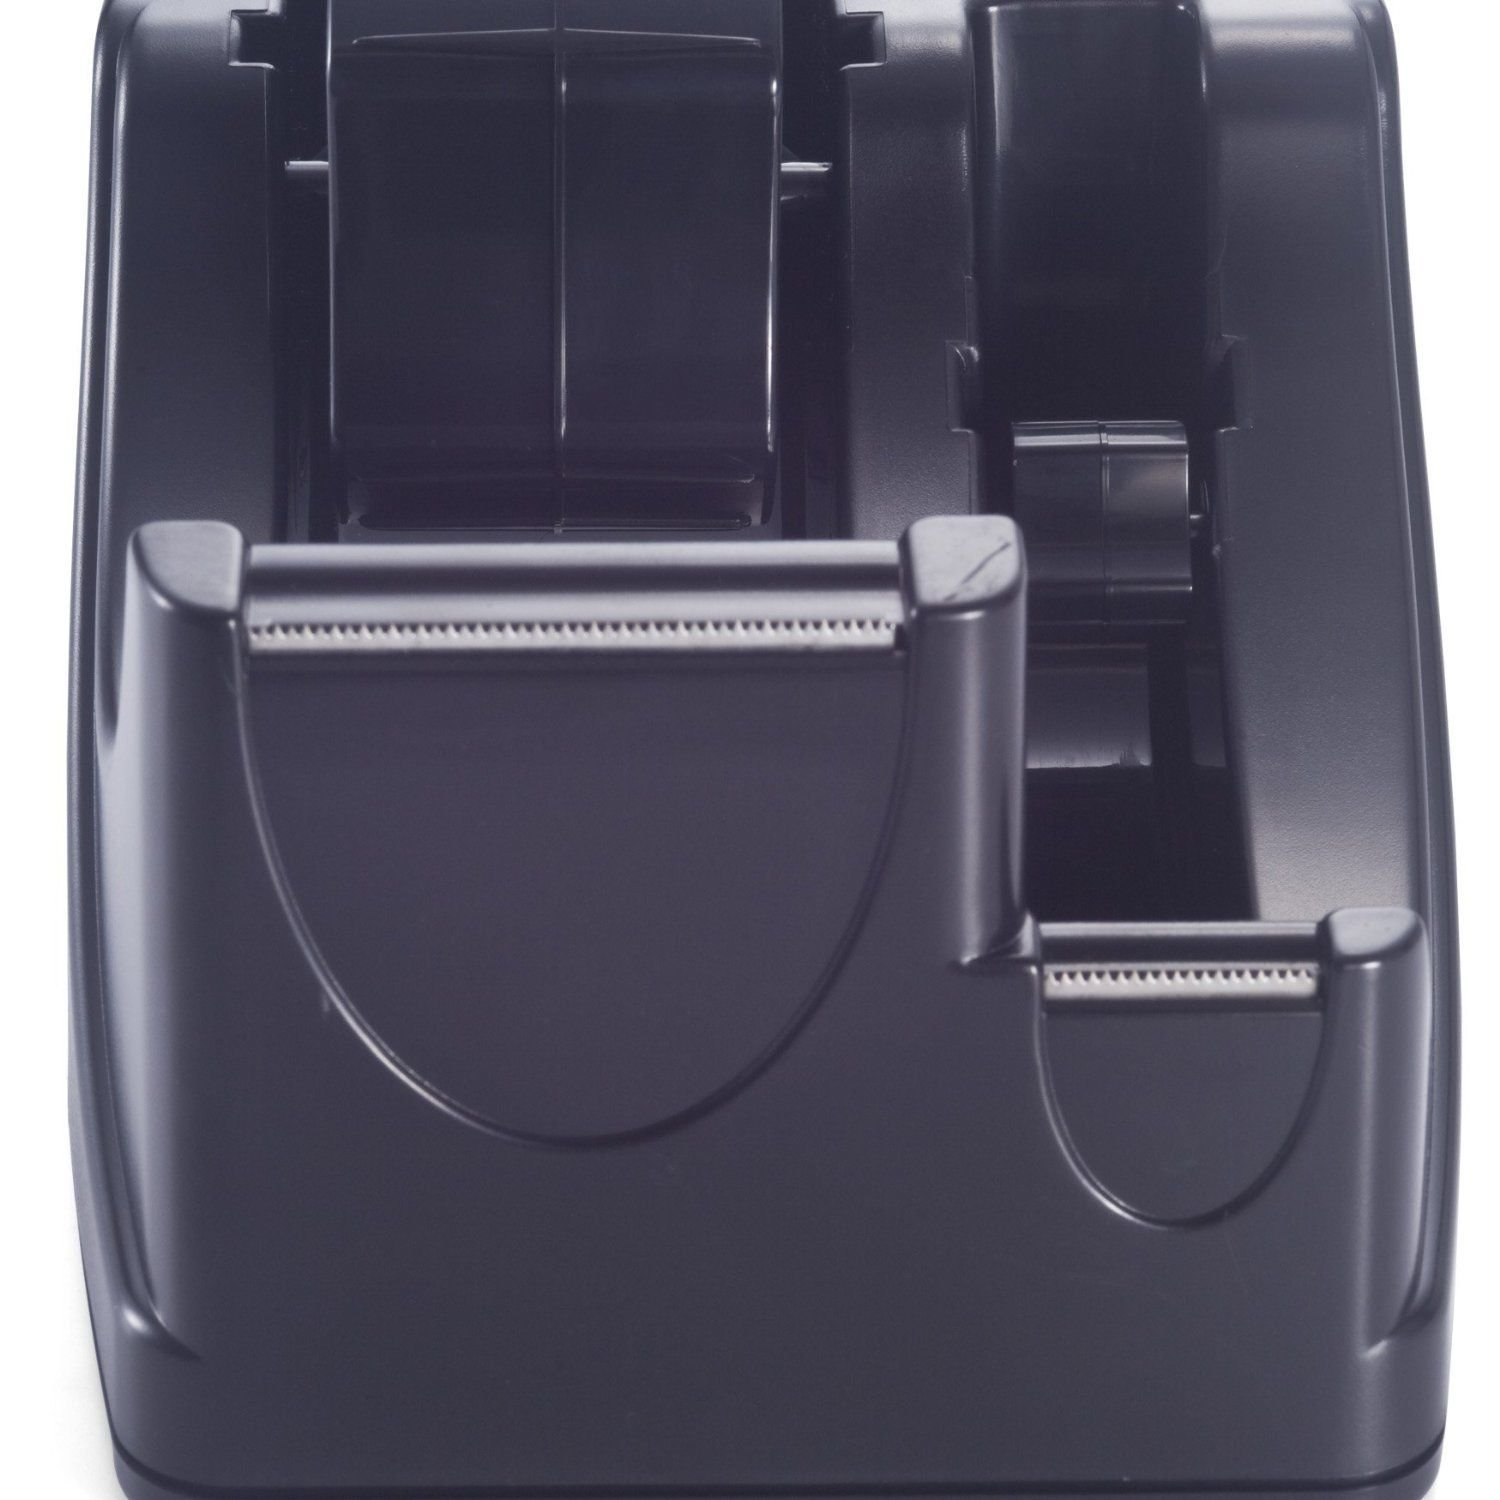 Generic NV_1008002726_YC-US2 , Newled Heavy Duty Heav Officemate y Tap Tape Dispenser, pense Recycled 2-In-1 ack, Black, 96690, New Officem